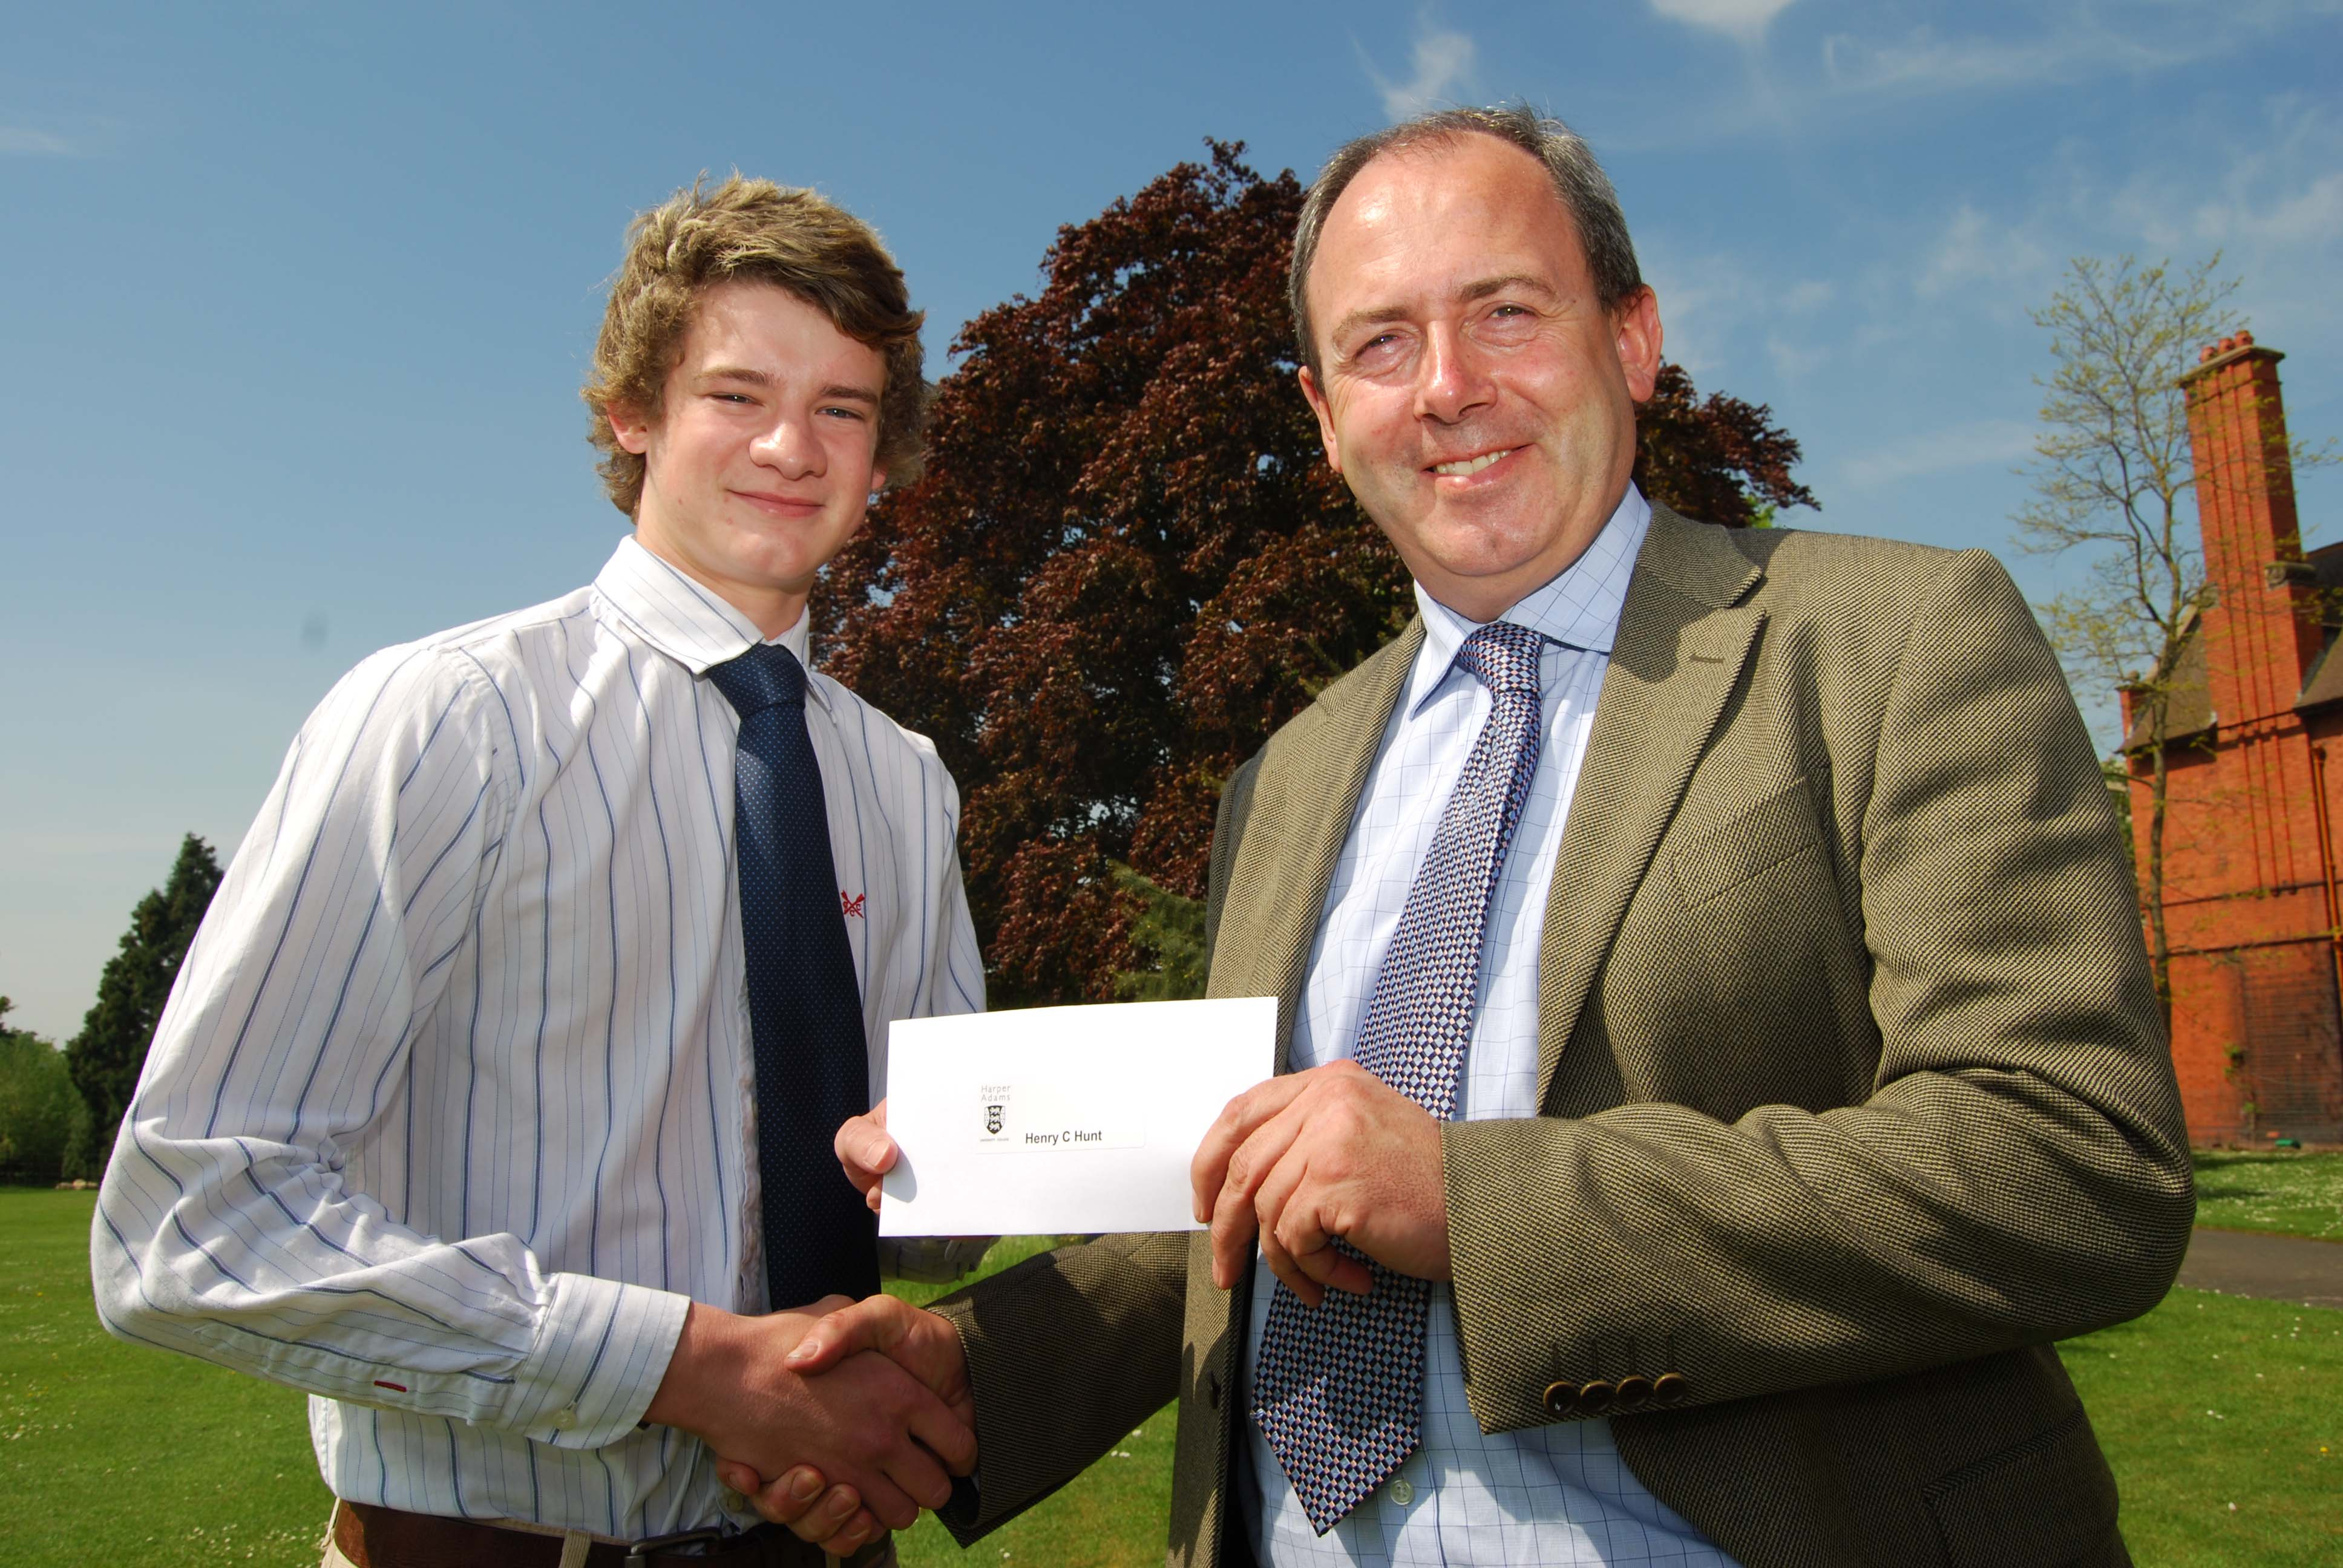 Henry Hunt receives his prize from Tony Asson